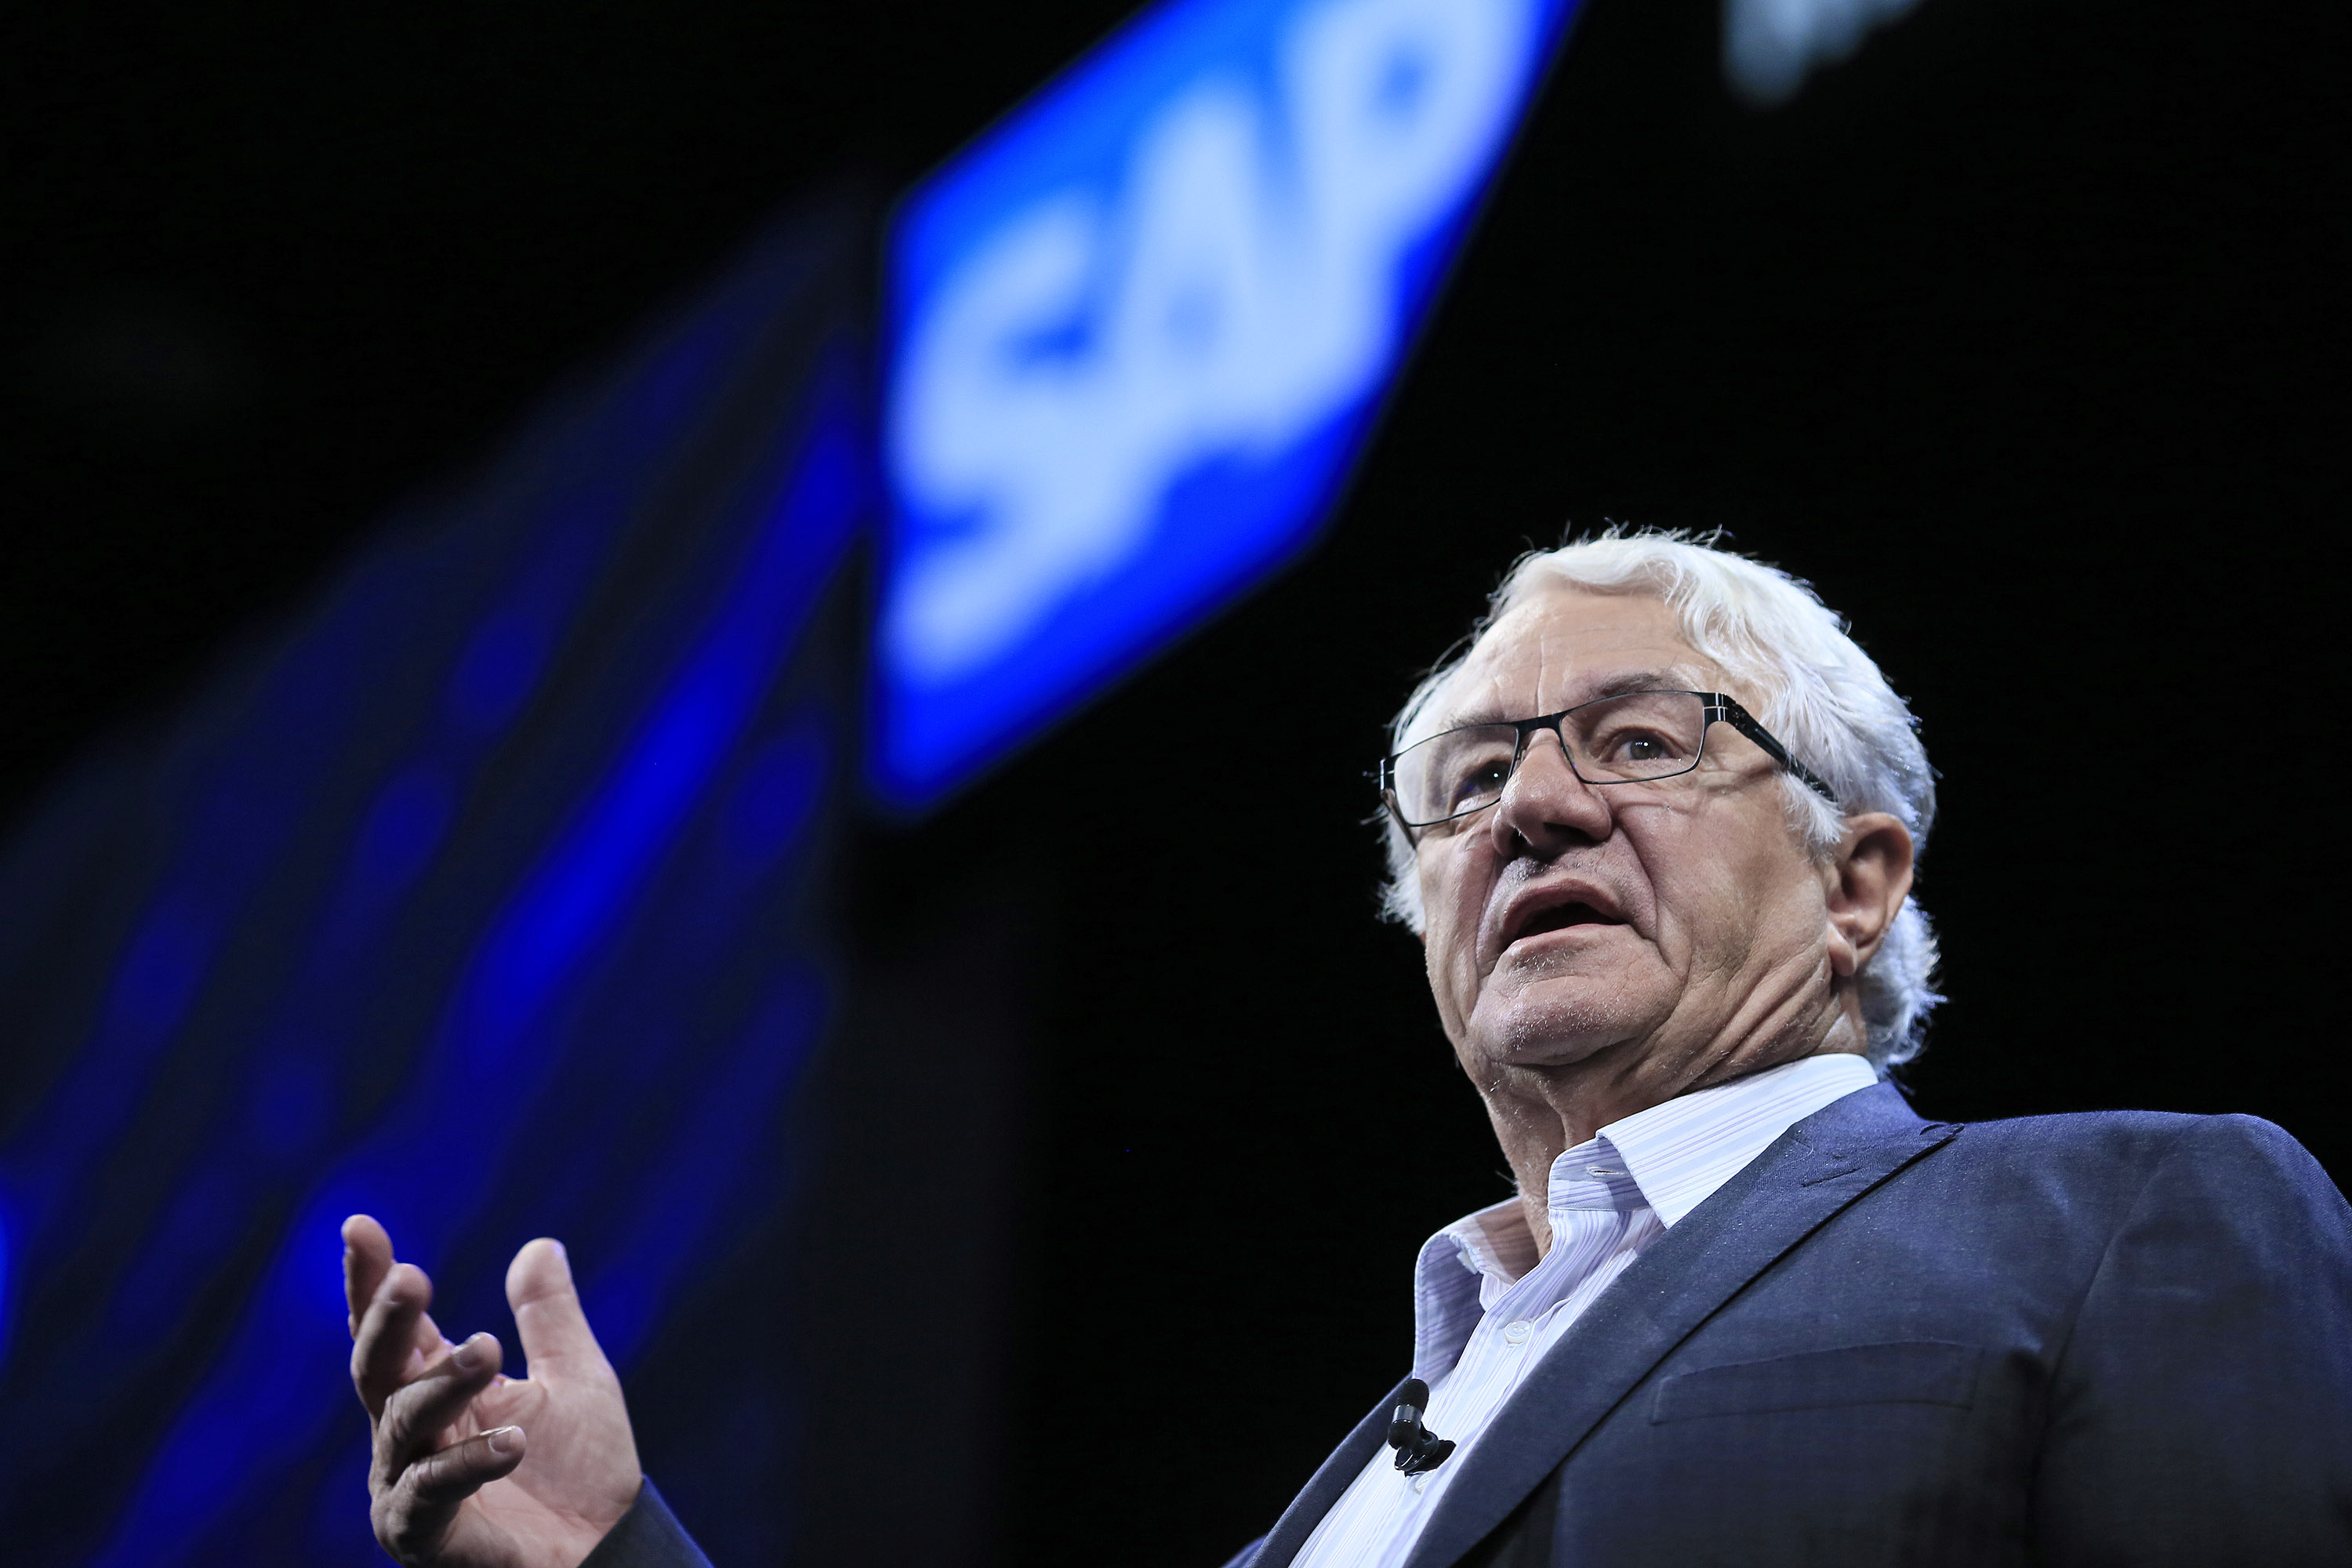 Hasso Plattner at SAPPHIRE Data Warehouse Cloud